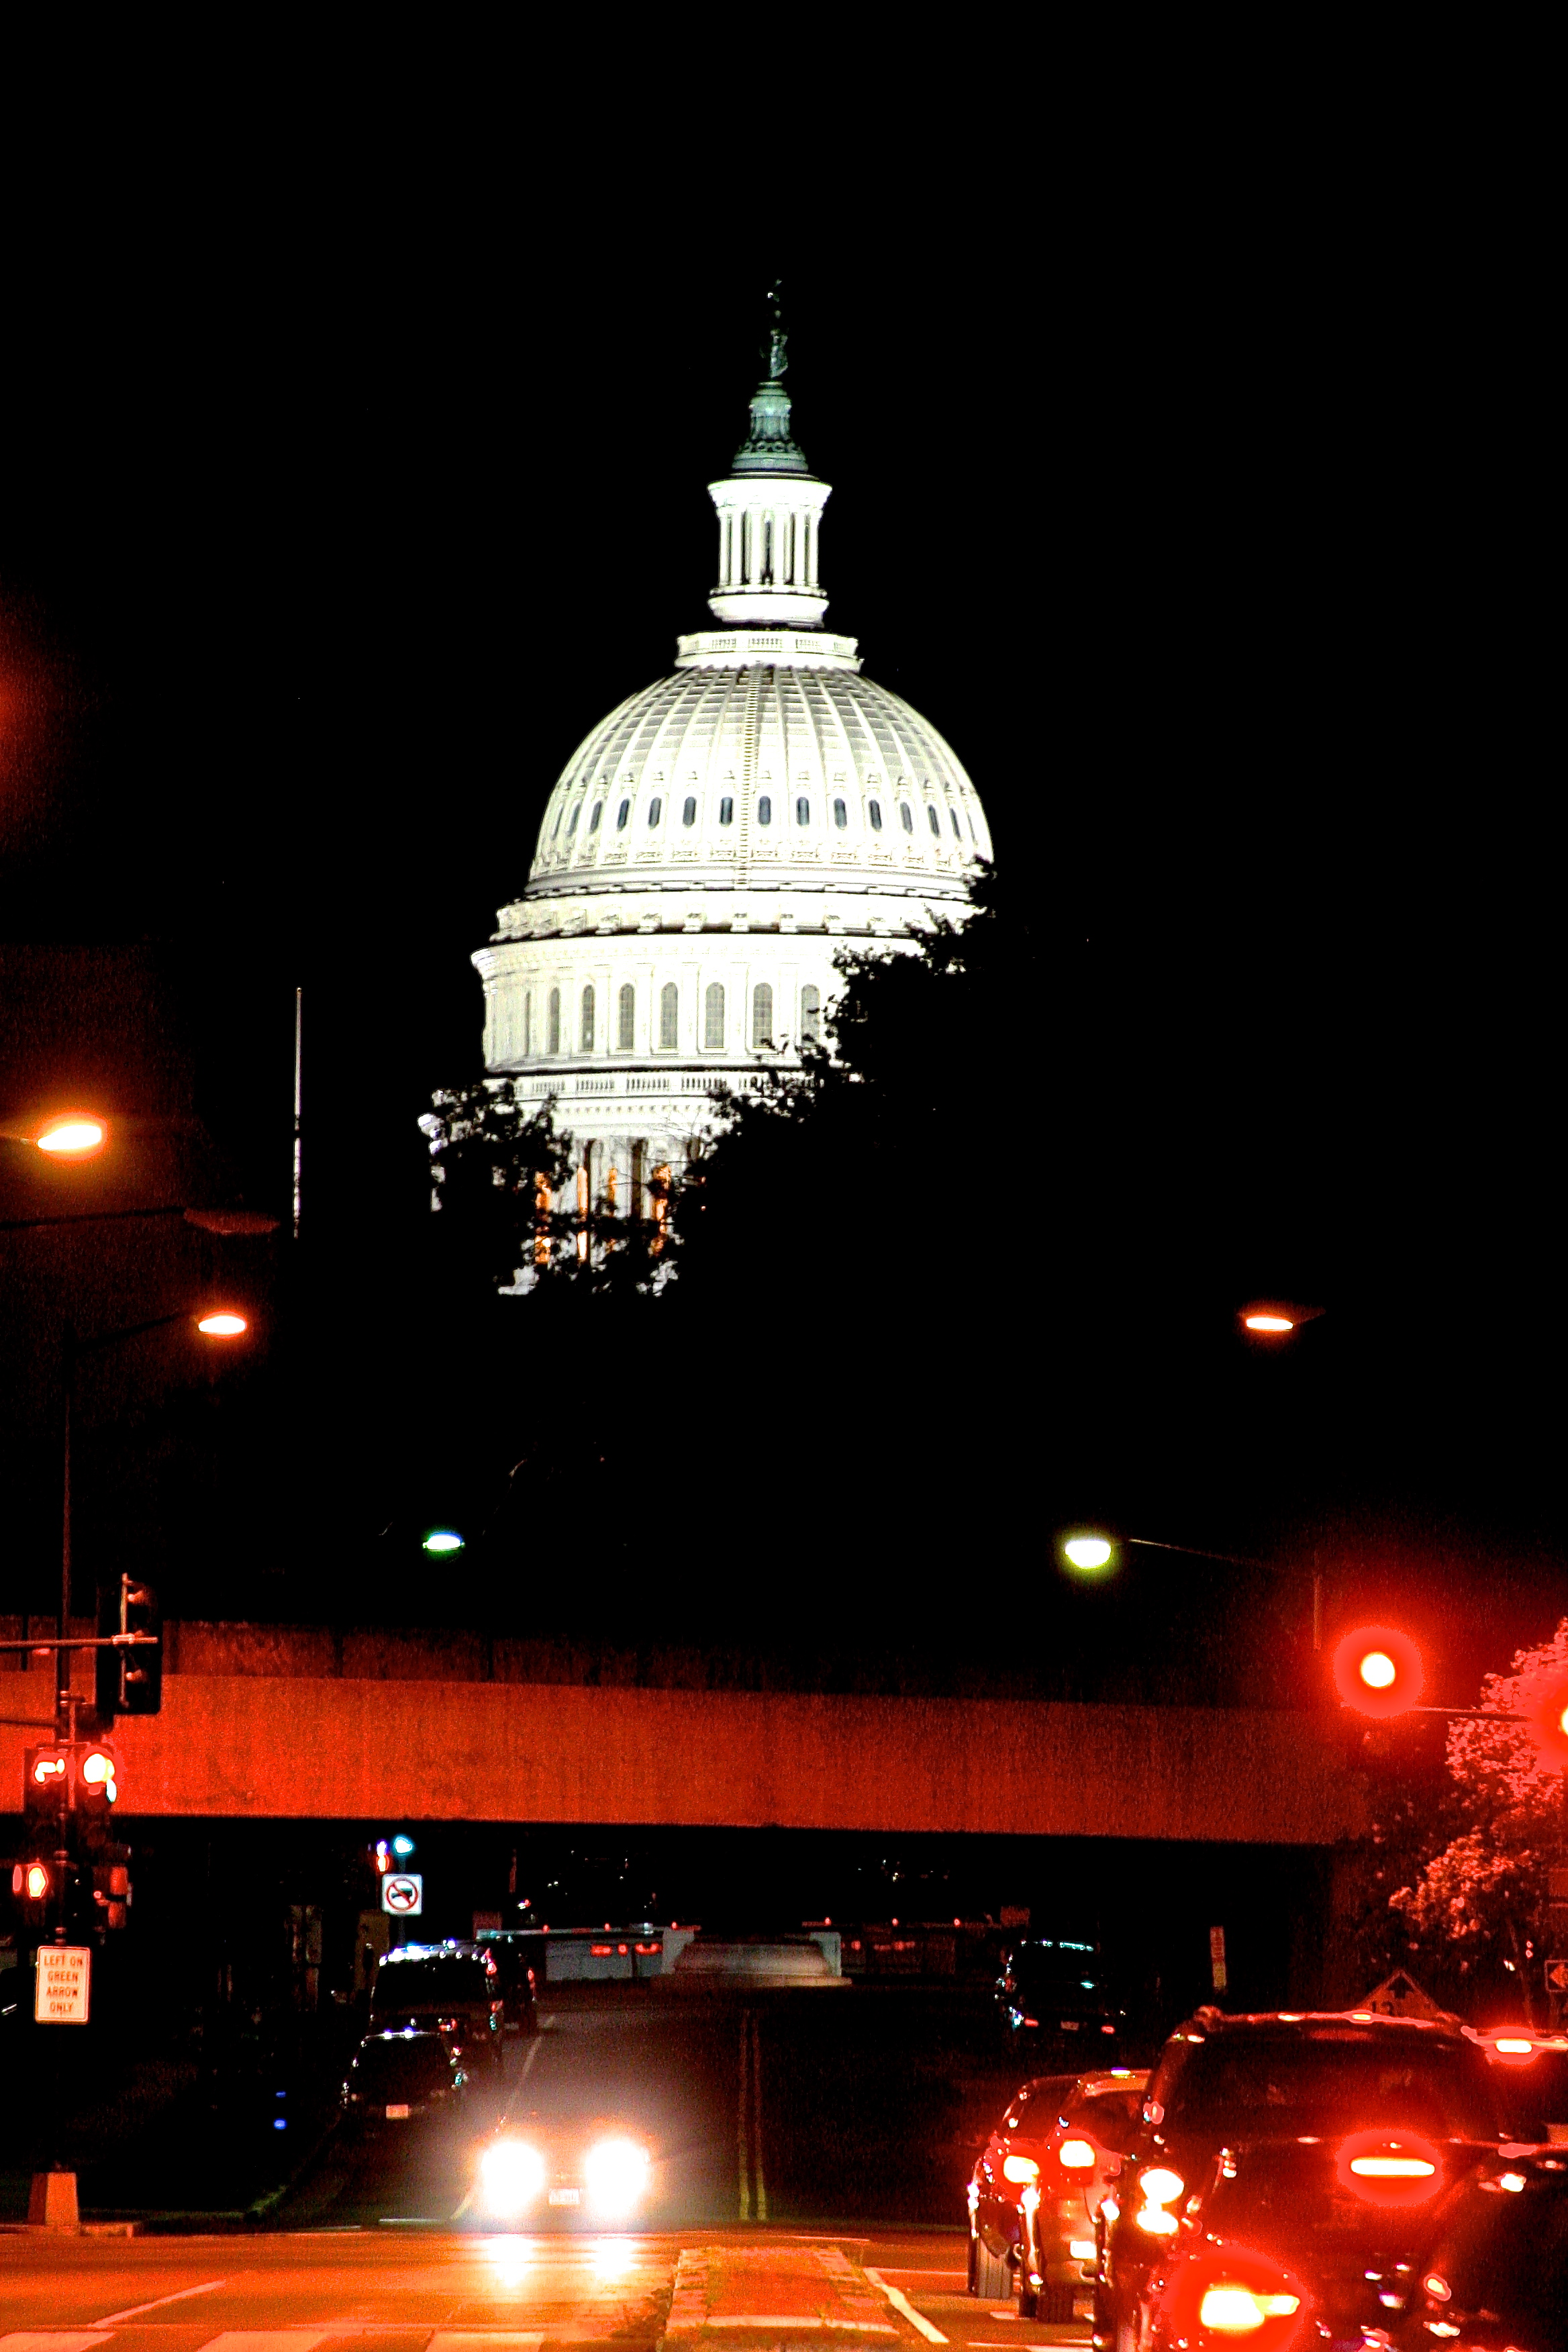 Night time for the Capitol